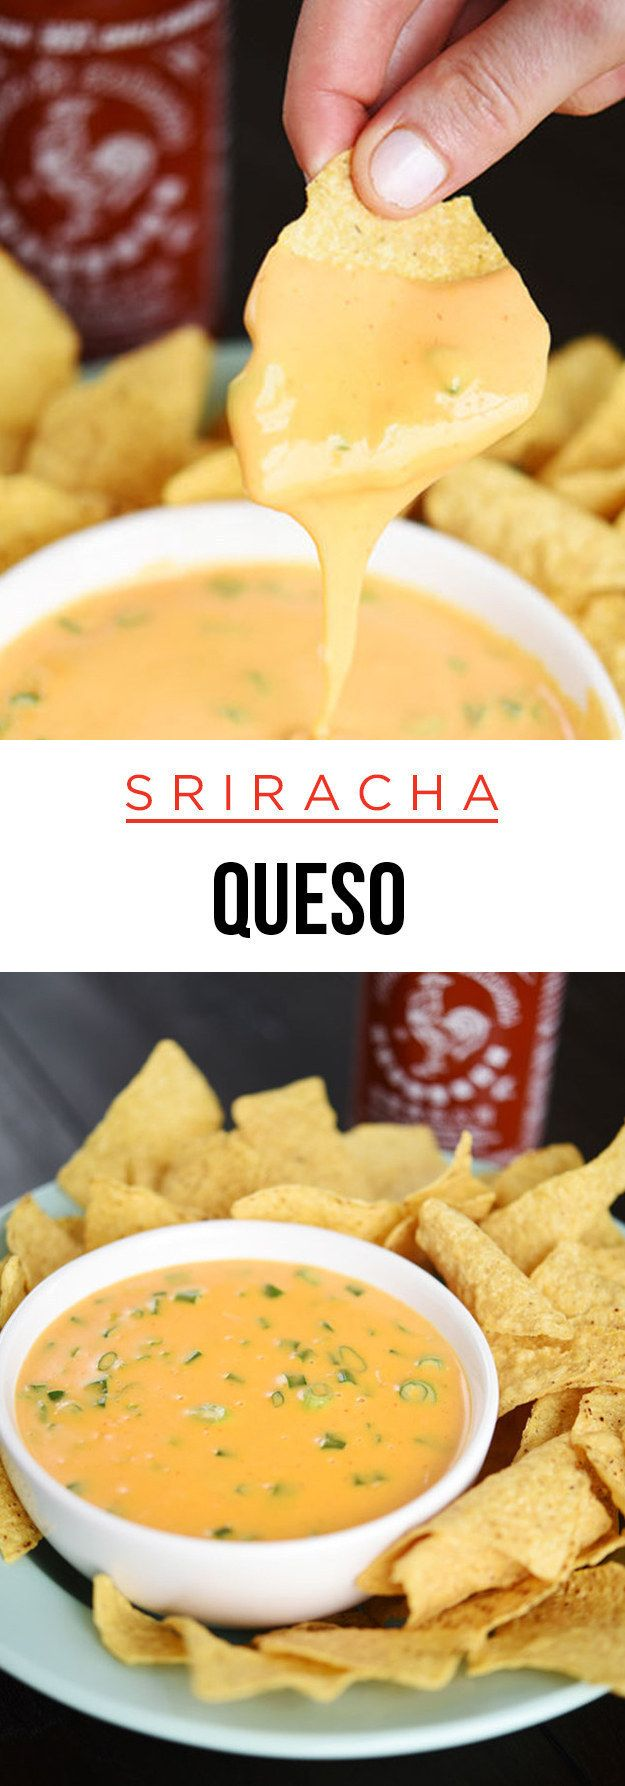 Sriracha Queso | 5 Recipes That Prove Sriracha and Cheese Are All You Need In Life